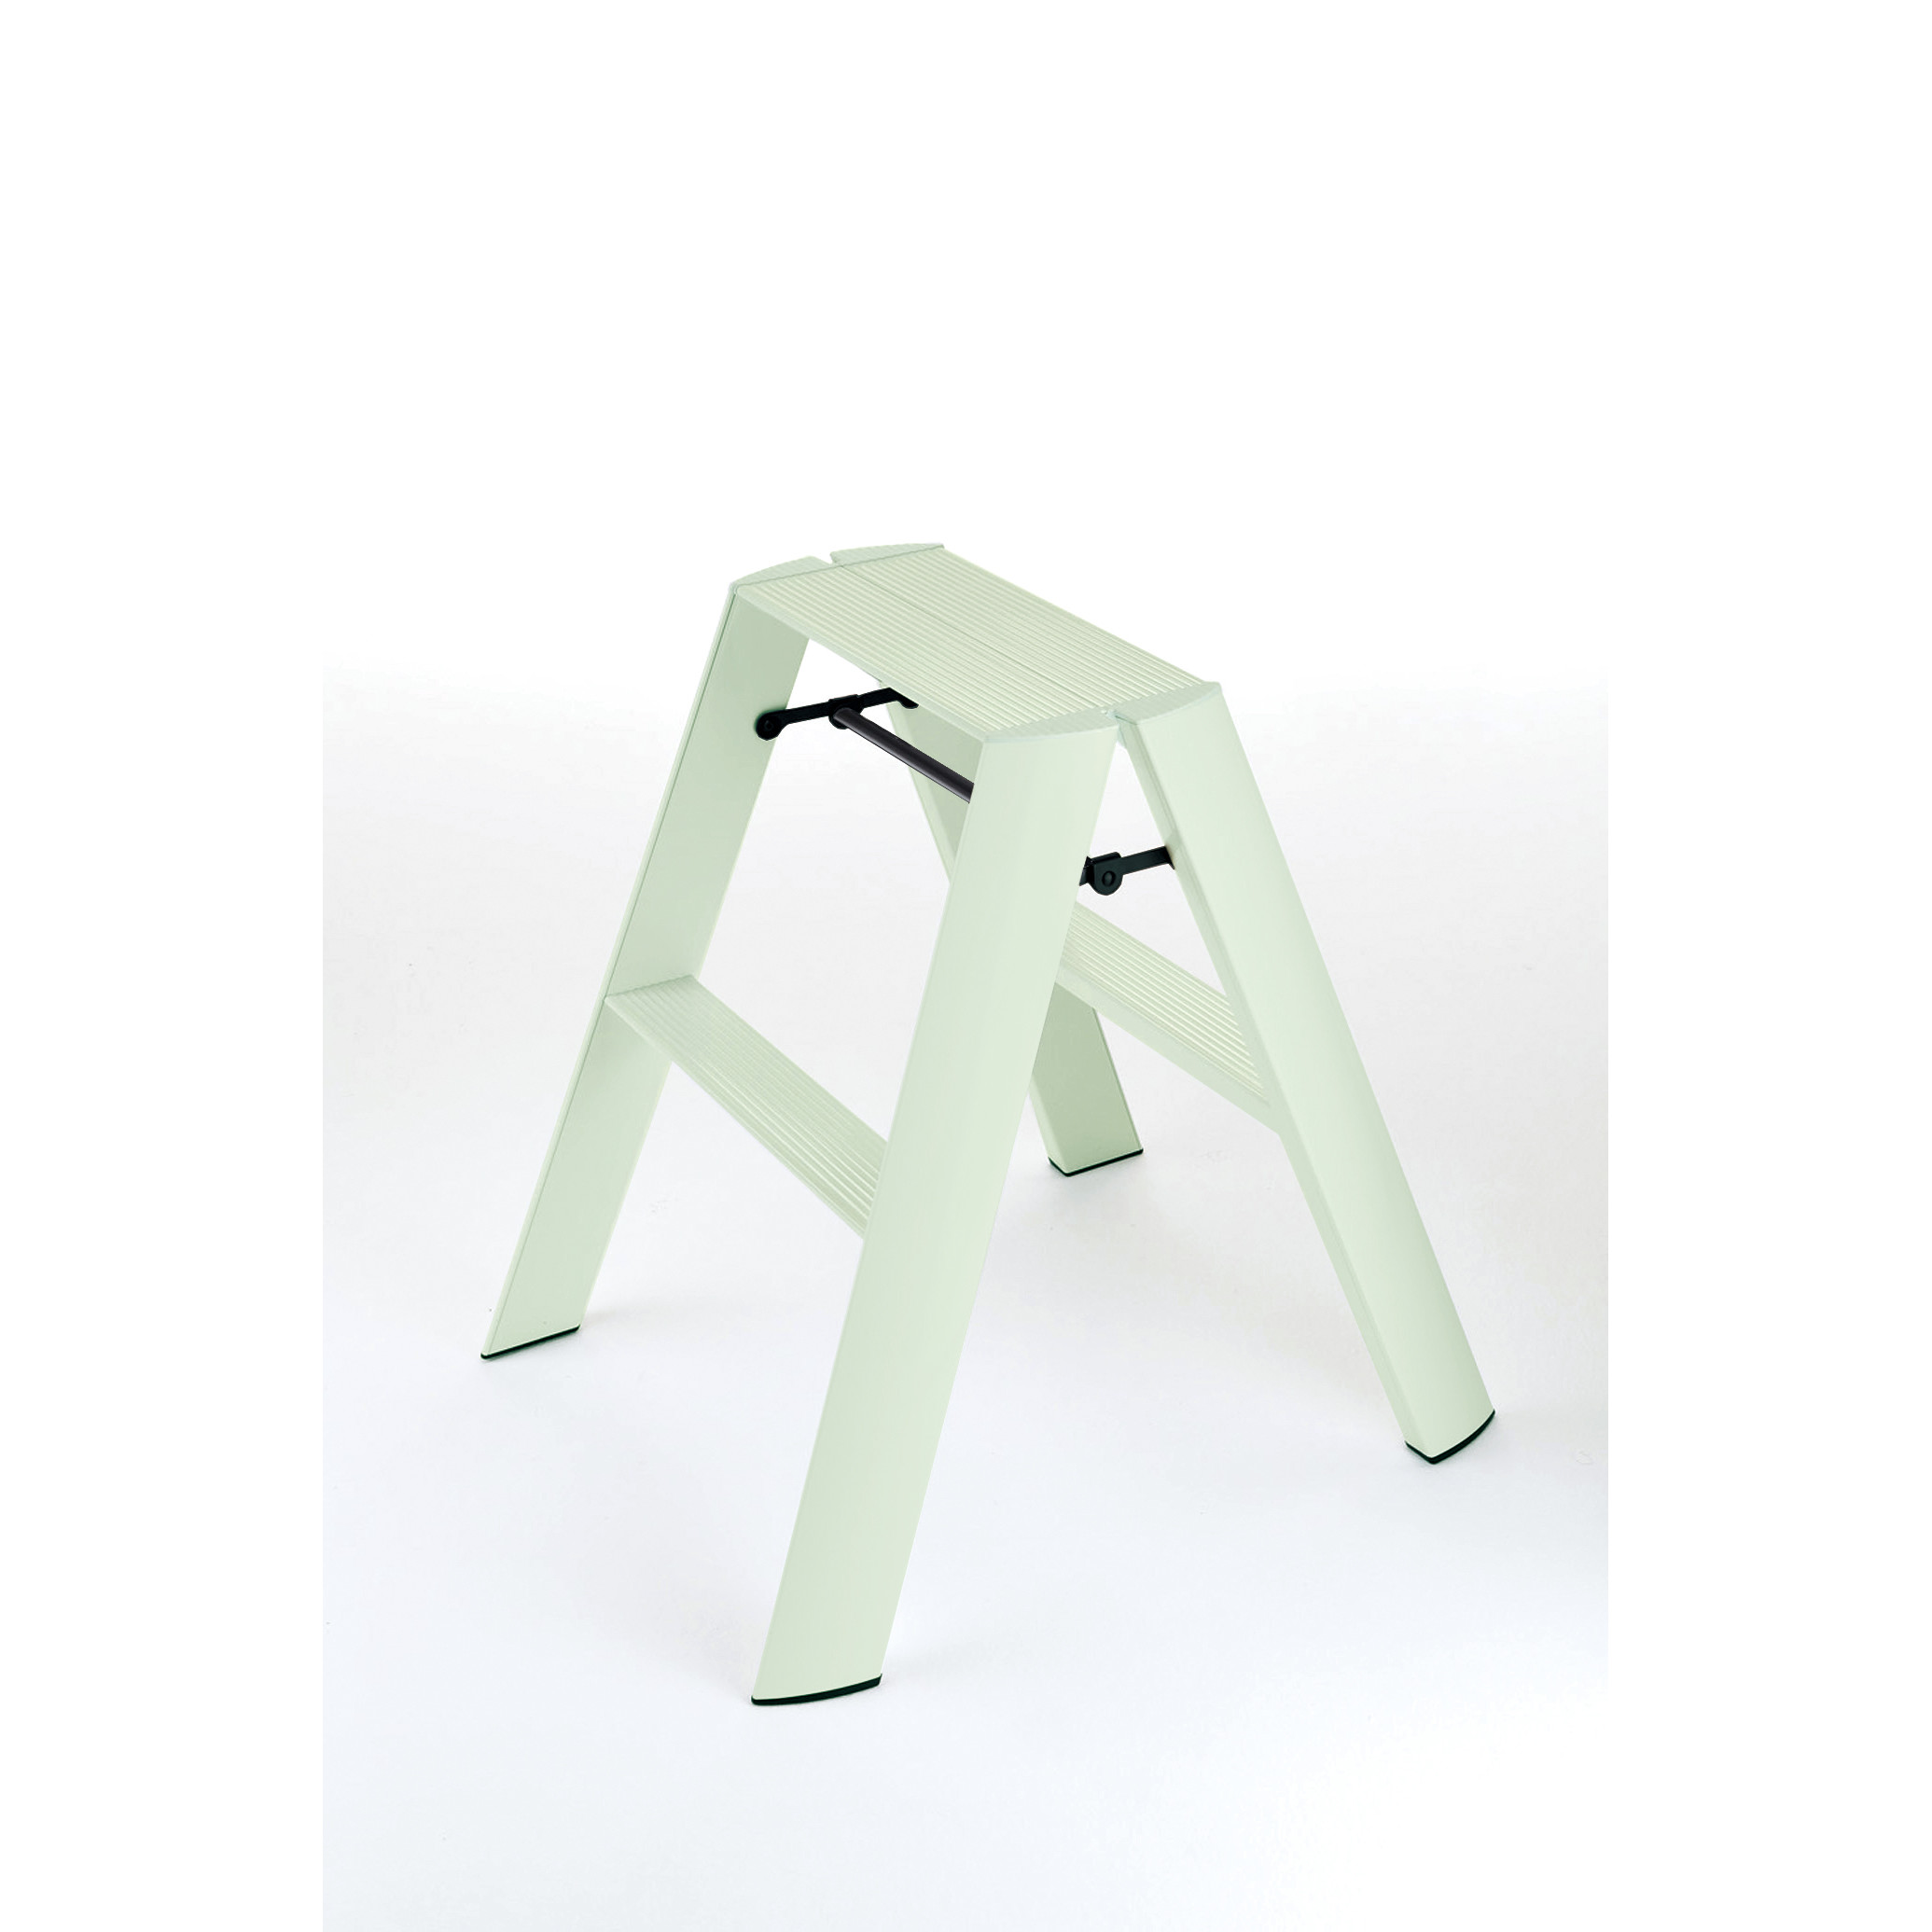 Magnificent Best Step Stools And Ladders To Help You Reach New Heights Gmtry Best Dining Table And Chair Ideas Images Gmtryco